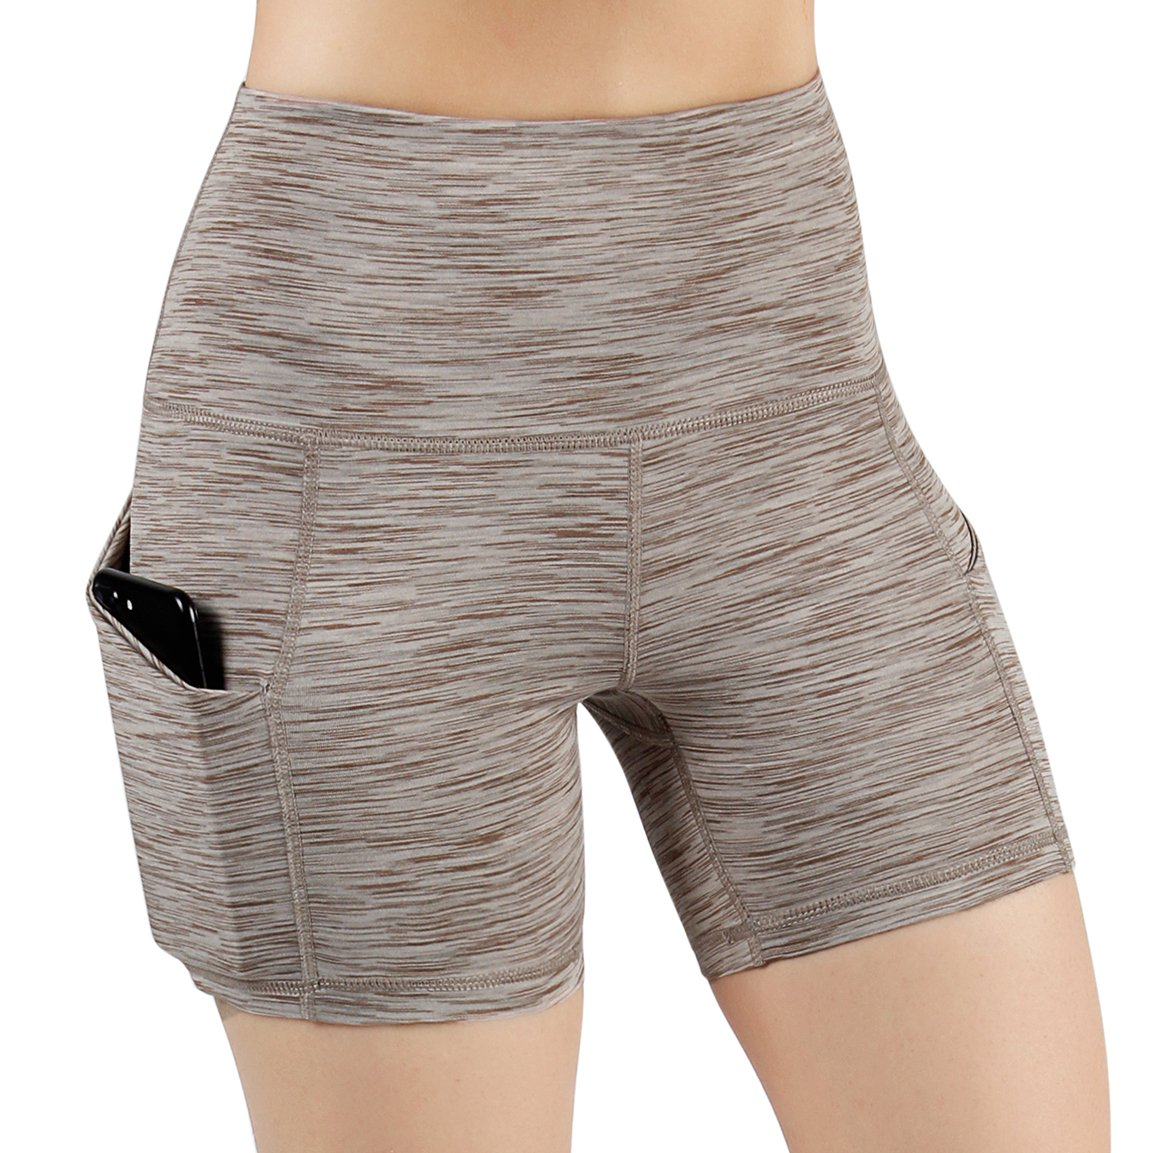 ODODOS High Waist Out Pocket Yoga Short Tummy Control Workout Running Athletic Non See-Through Yoga Shorts,SpaceDyeBrown,X-Large by ODODOS